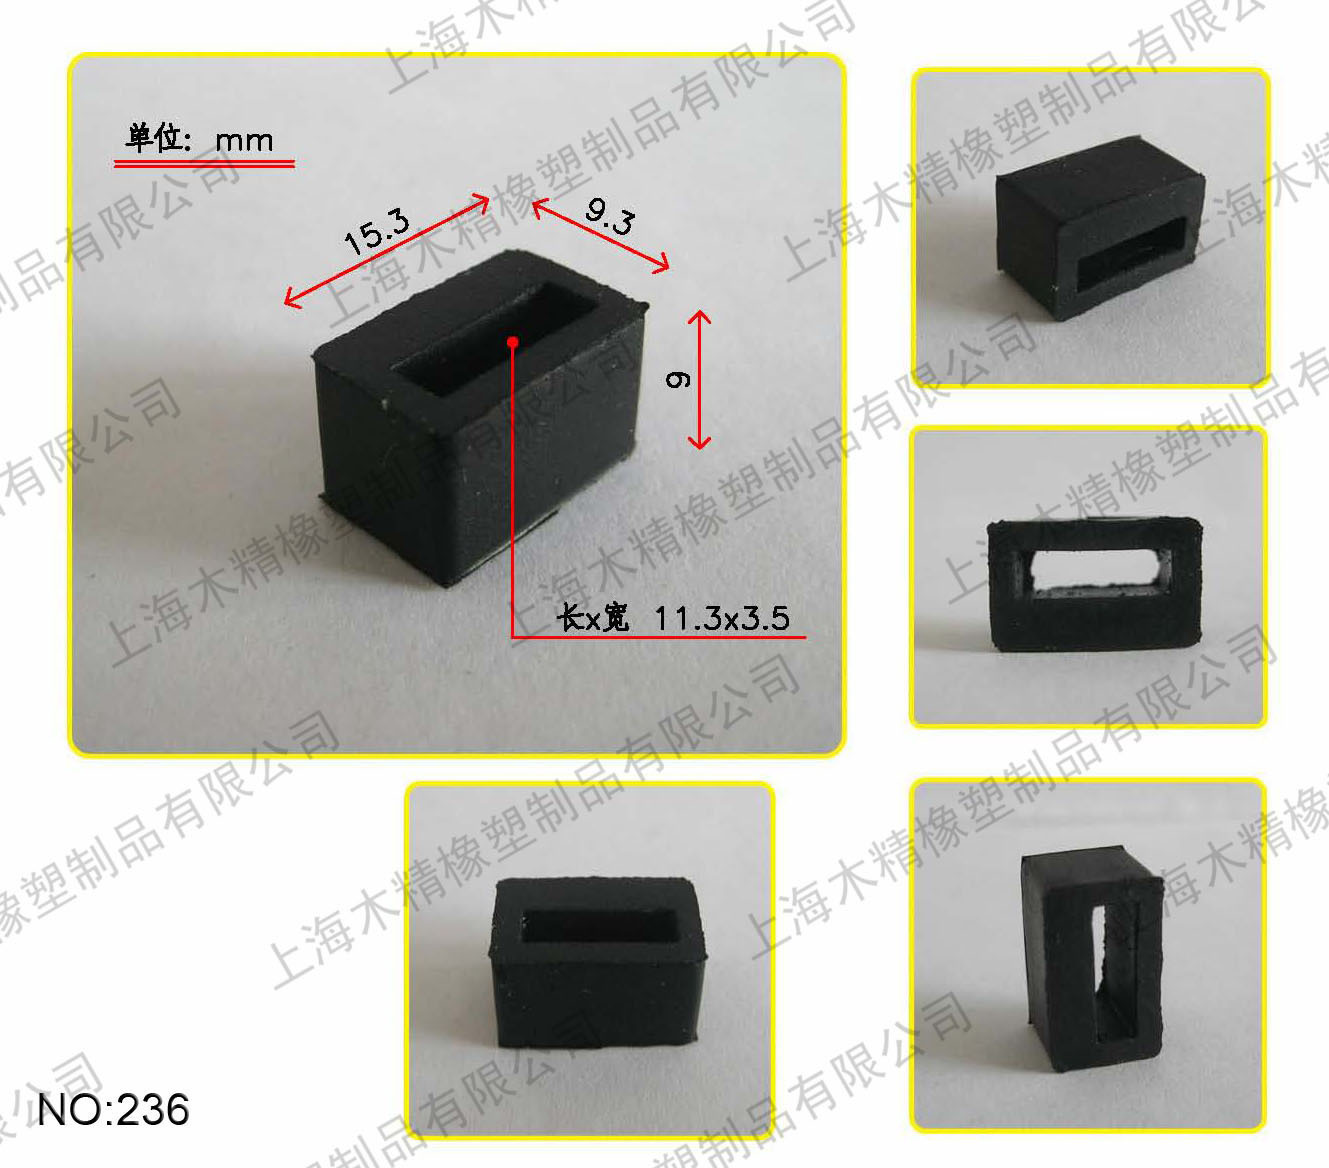 Rubber stopper, rubber protective sleeve, square pad, rubber feet, friction block 15.3X9mm